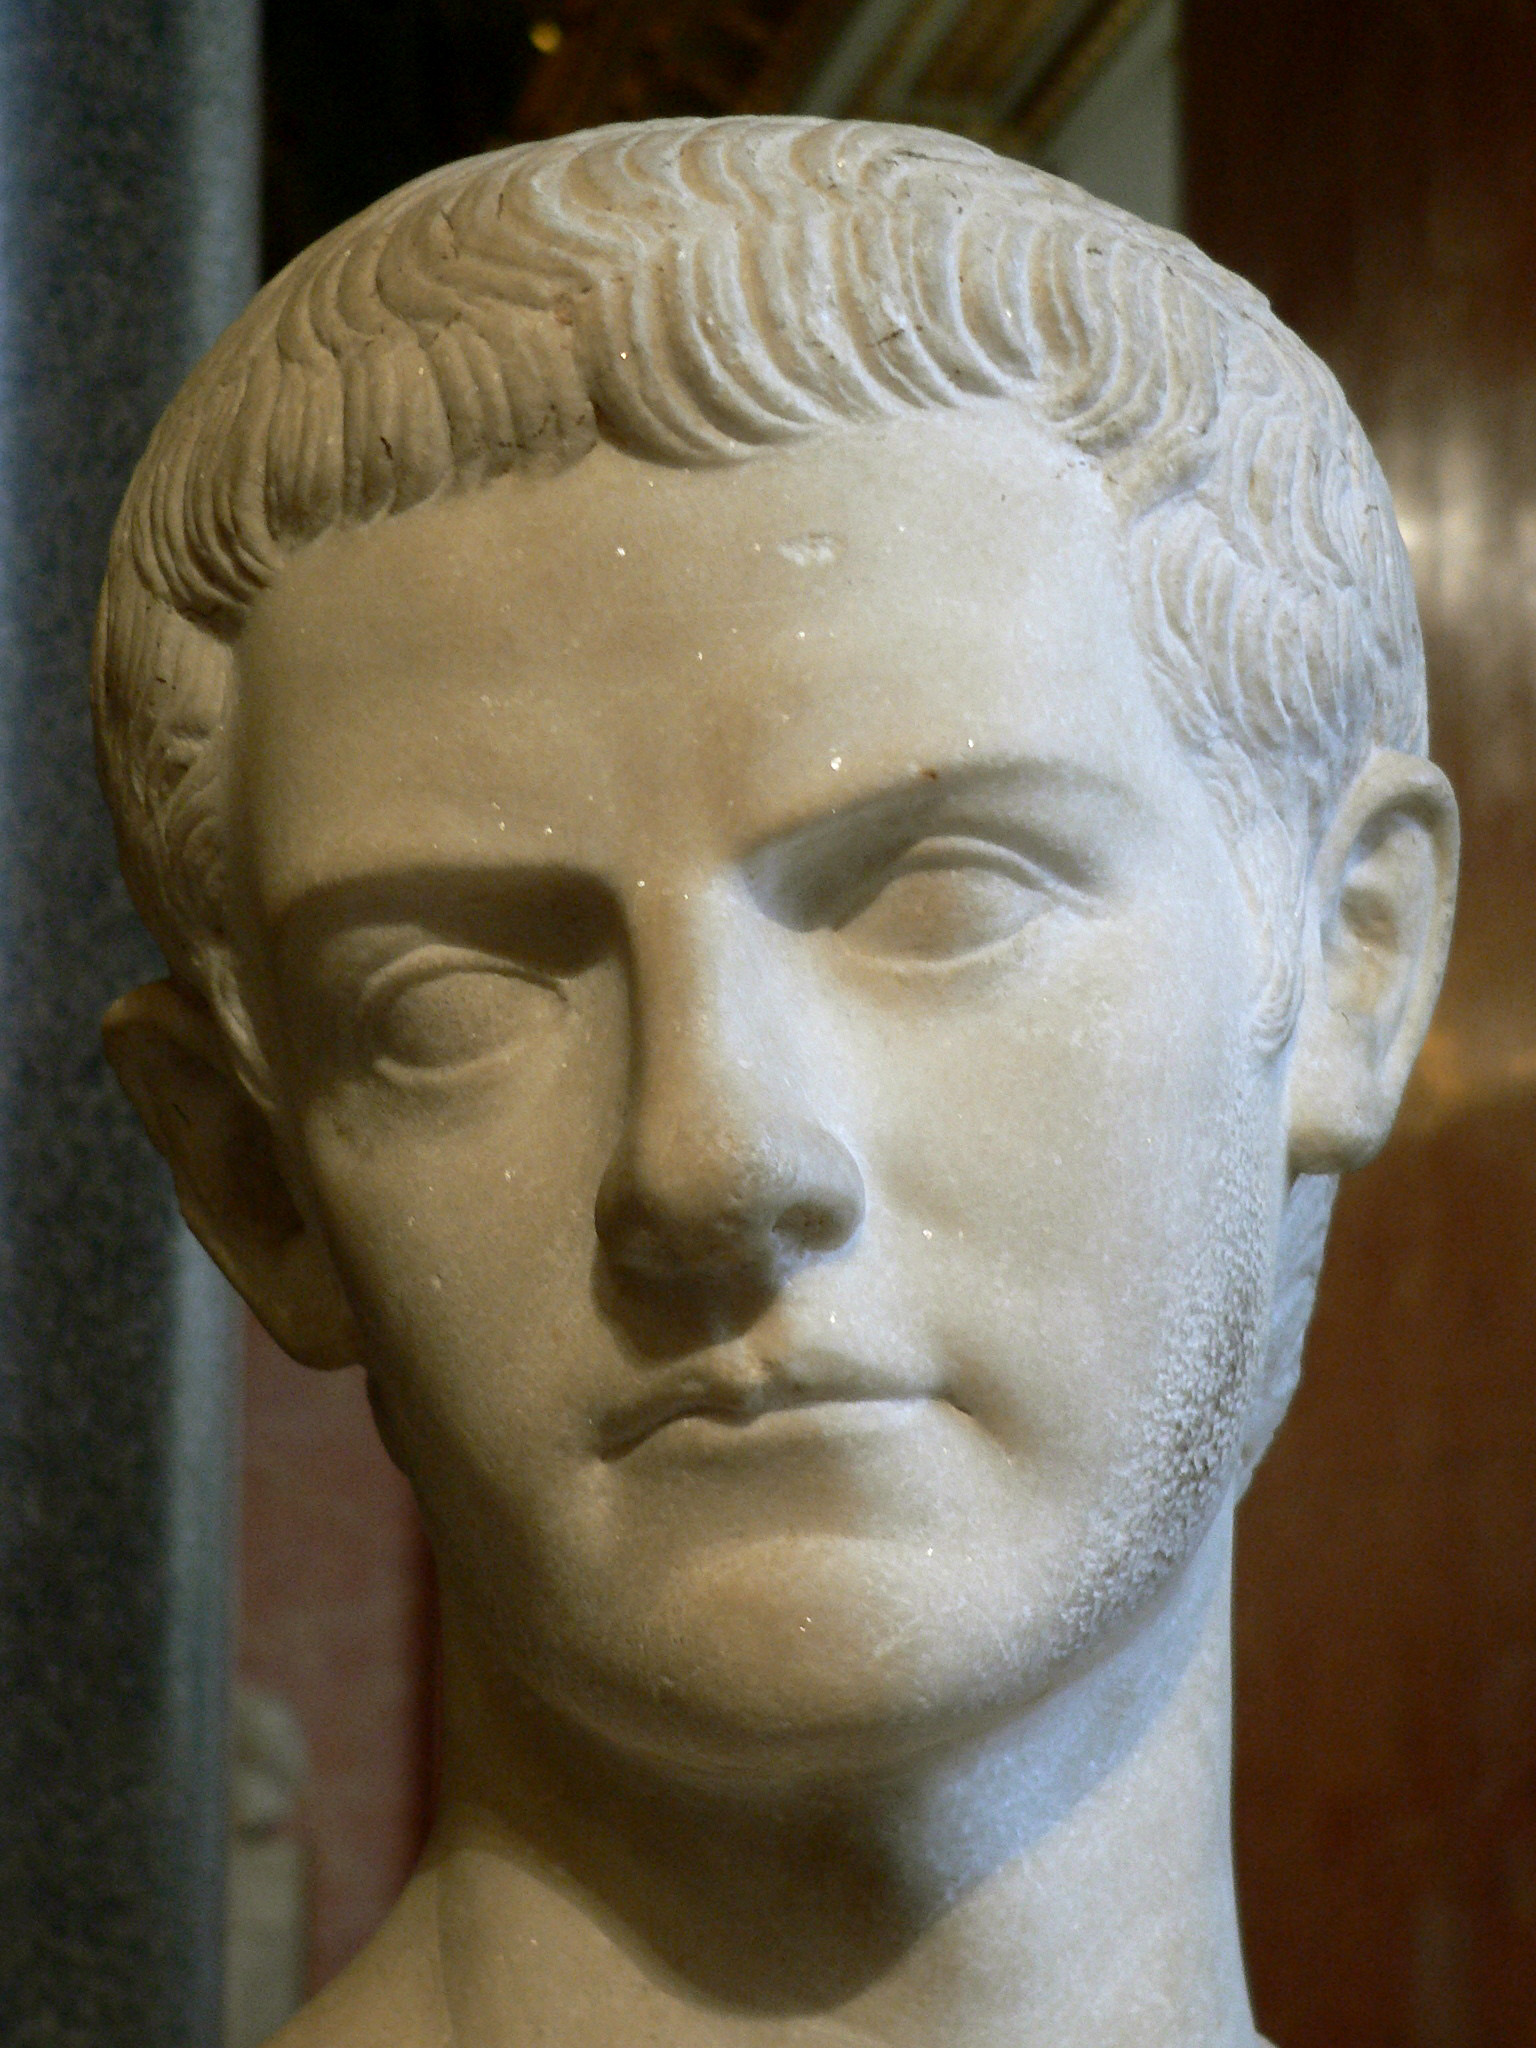 a biography of caligula the emperor of rome Caligula was born on august 31st, 12 ad he had four brothers and three sisters two of caligula's brothers died before they grew up caligula's father also died when caligula was only seven it's possible that the emperor tiberius poisoned caligula's father to get him out of the way after his father died,.